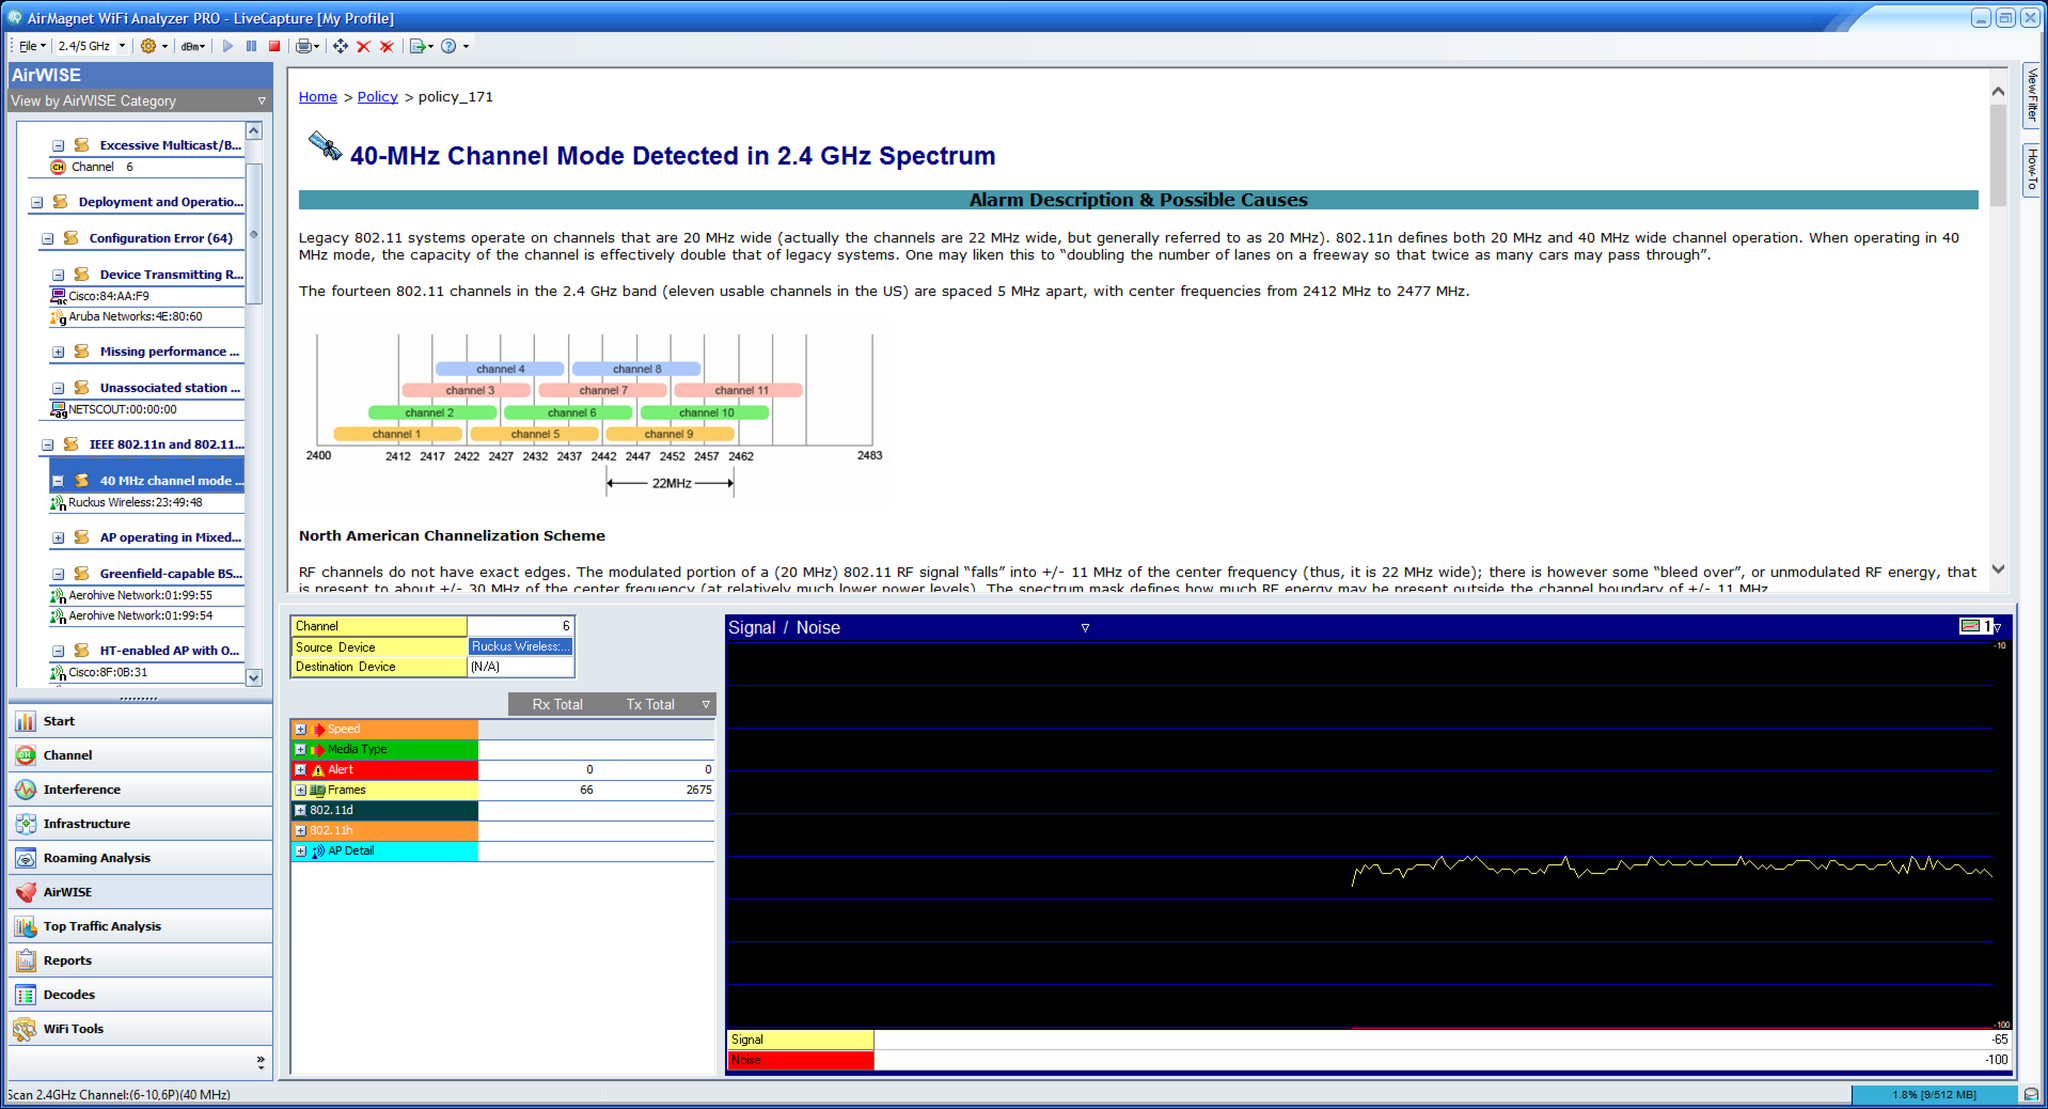 NetAlly AirMagnet Analyser Pro software